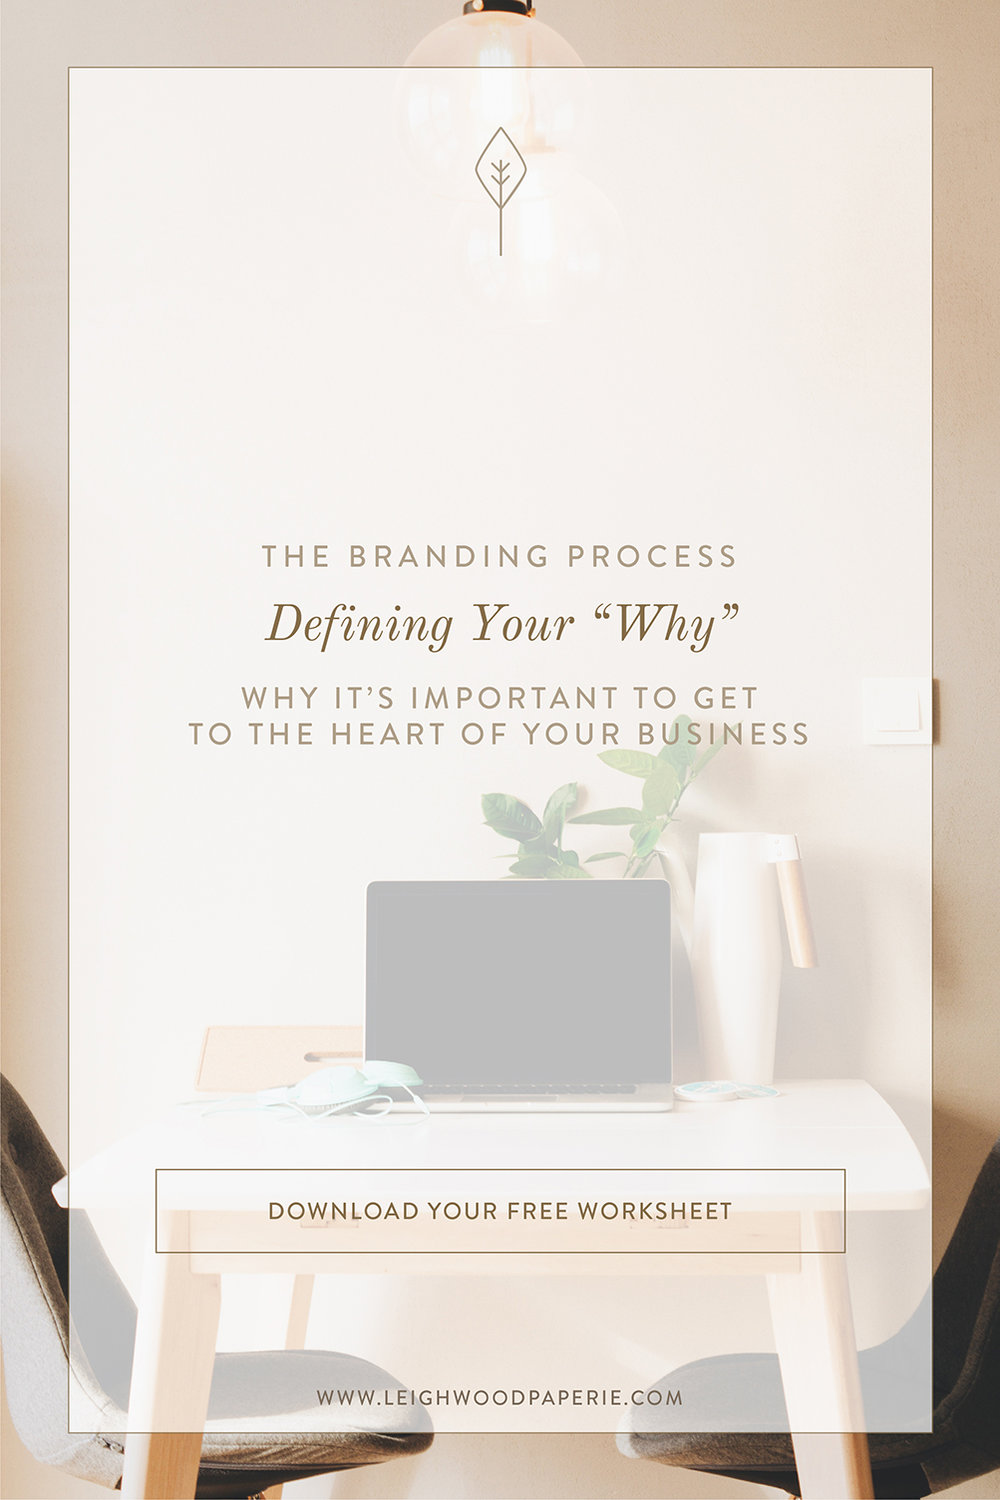 Leighwood Paperie: Defining Your Why: Why it's important to get to the heart of your business